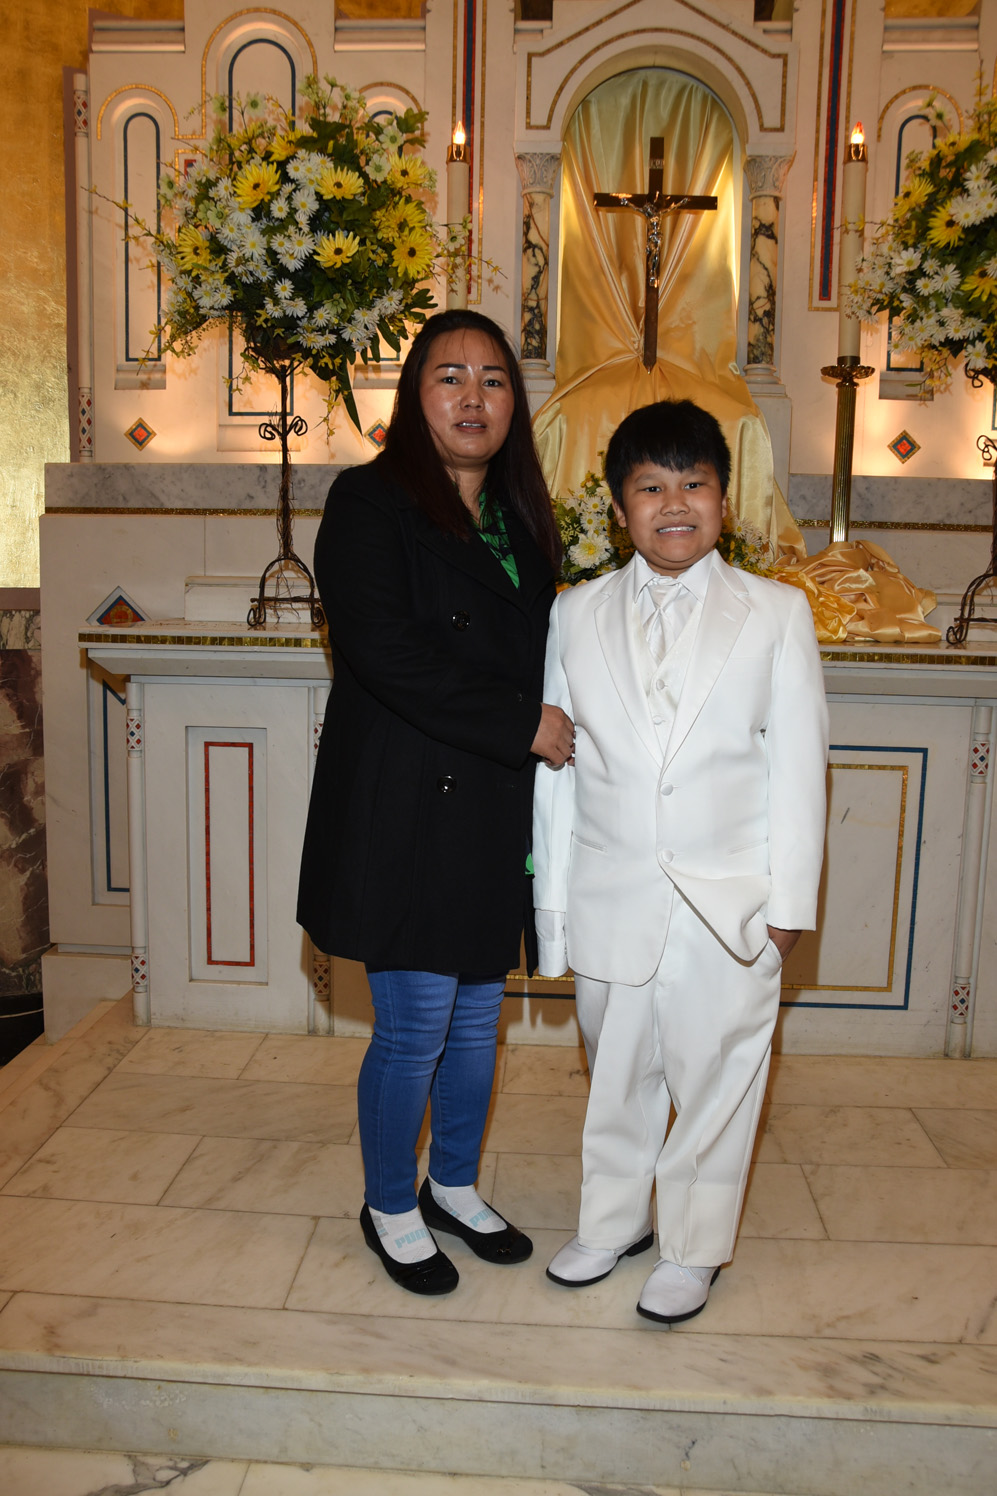 FIRST-COMMUNION-MAY-2-2021-1001001008